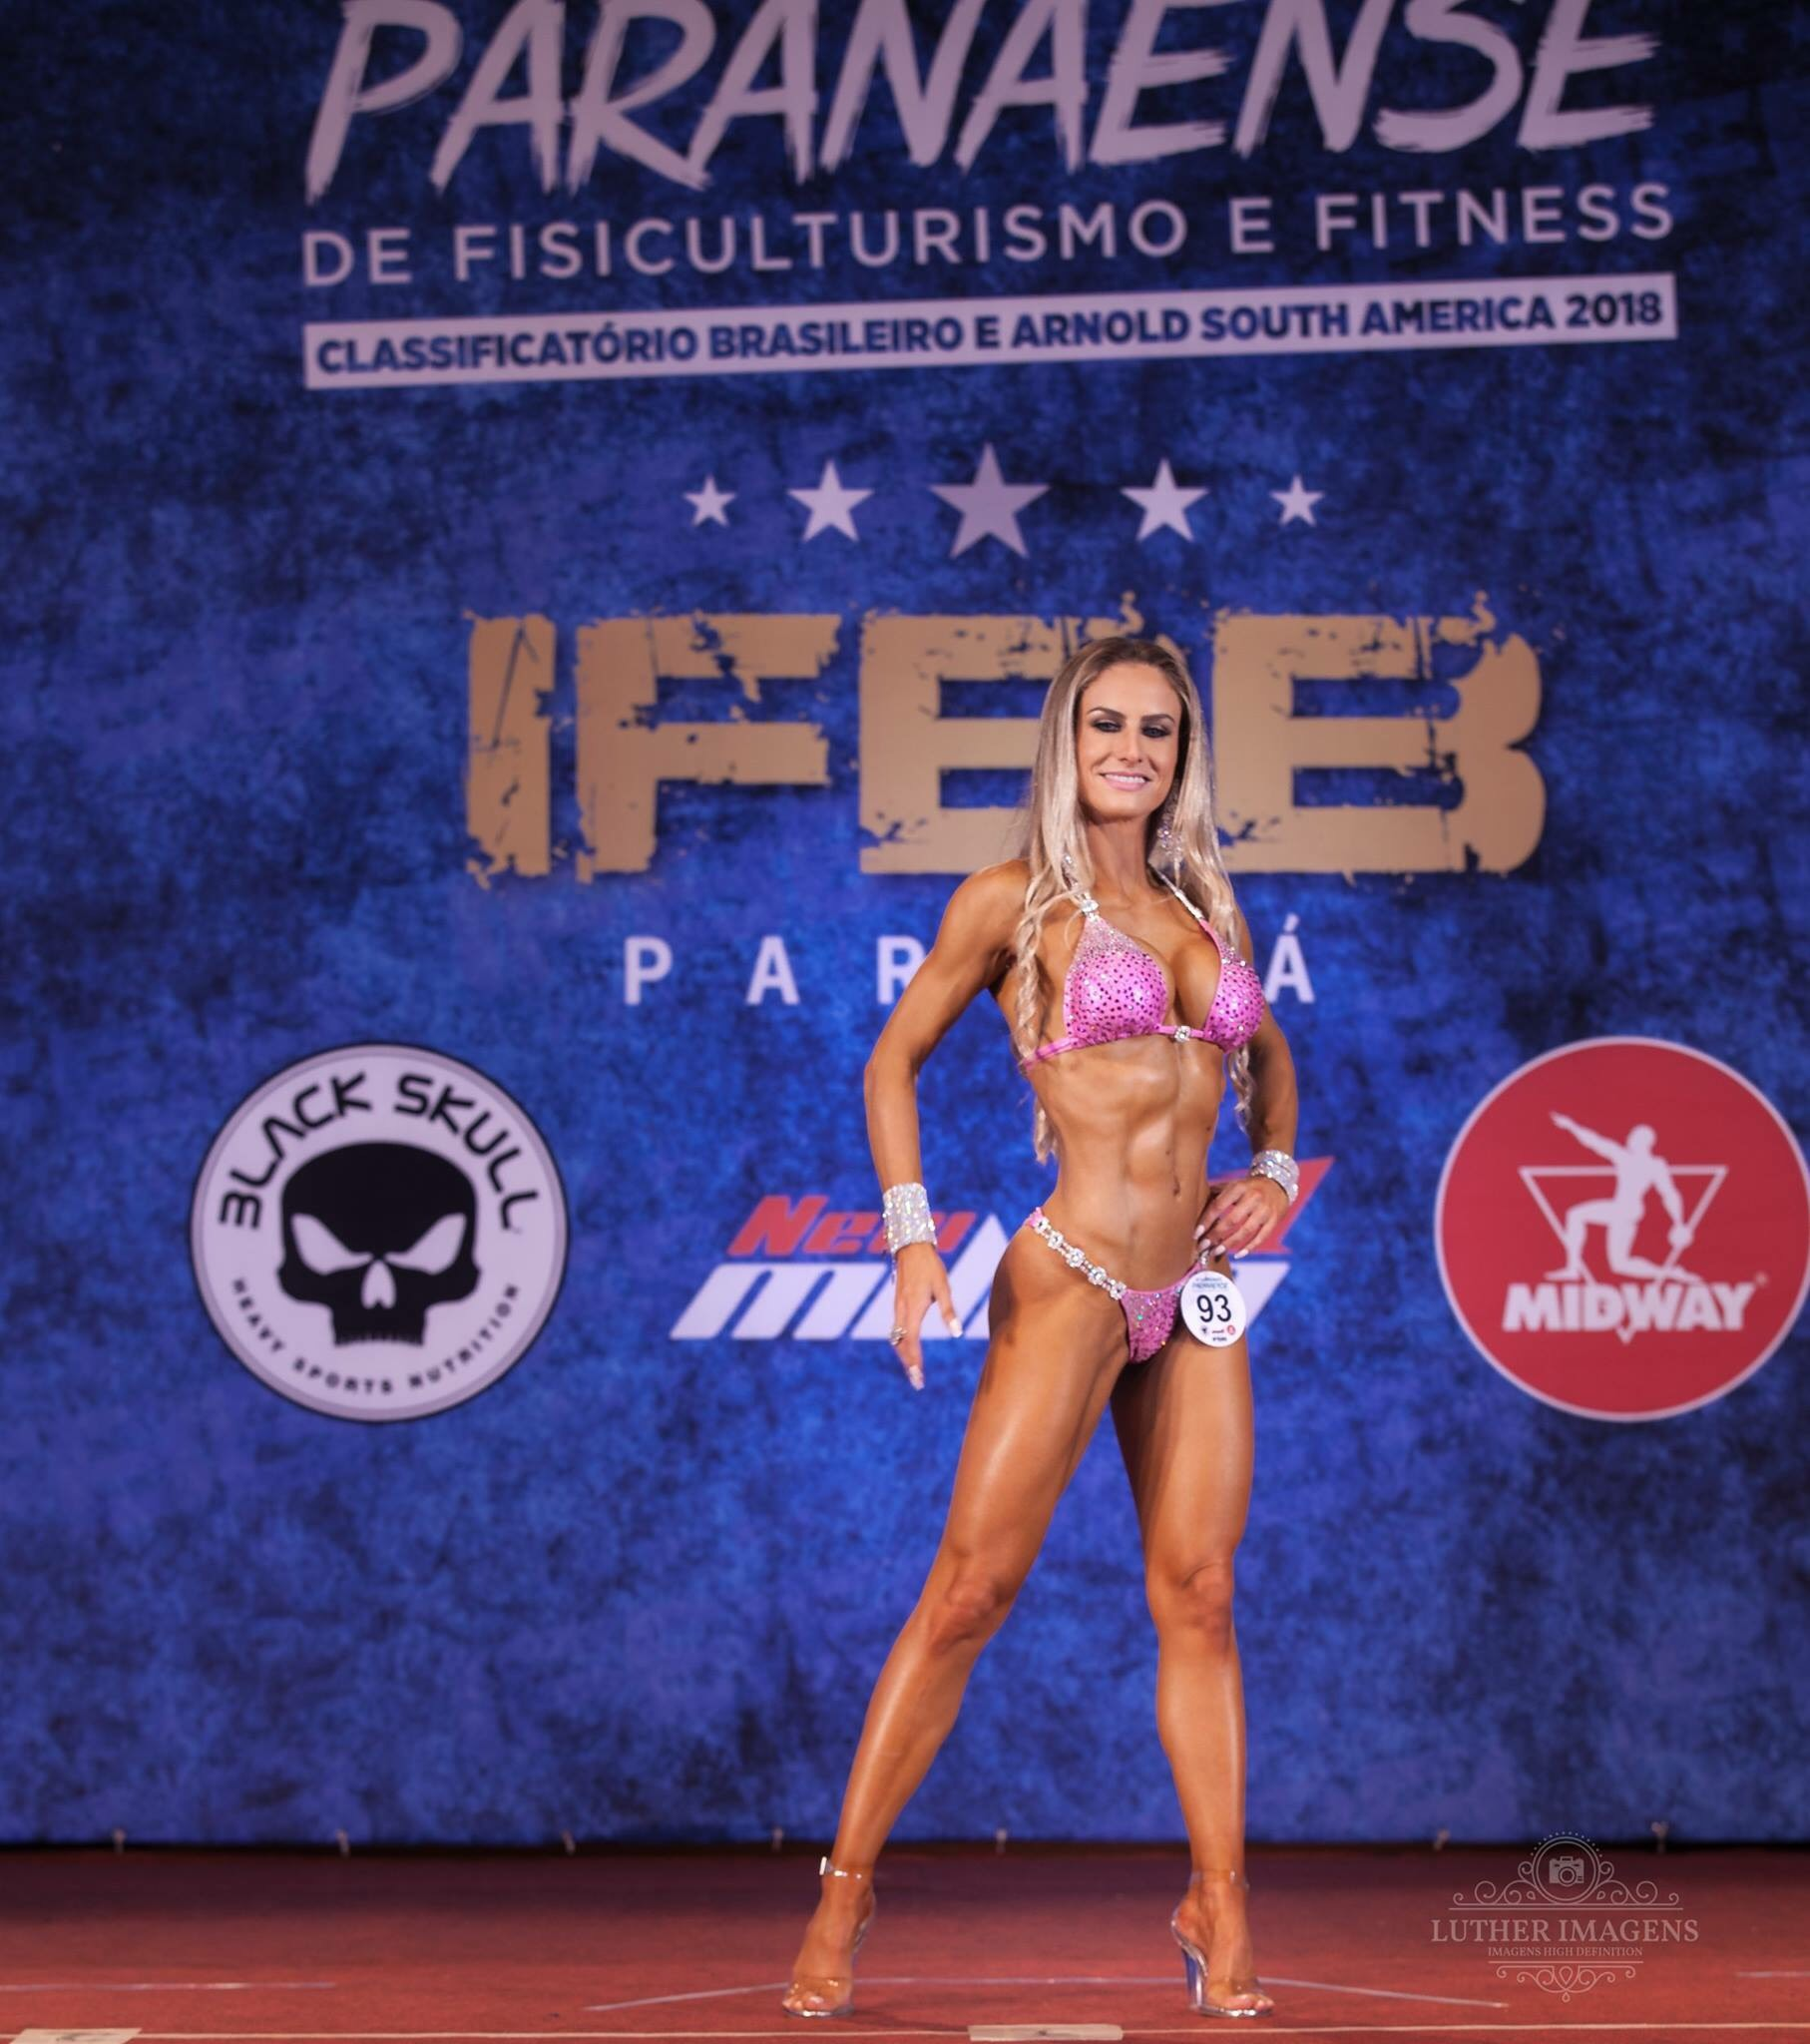 contestant athlete at IFBB Paraná Brasil sponsored by midway labs